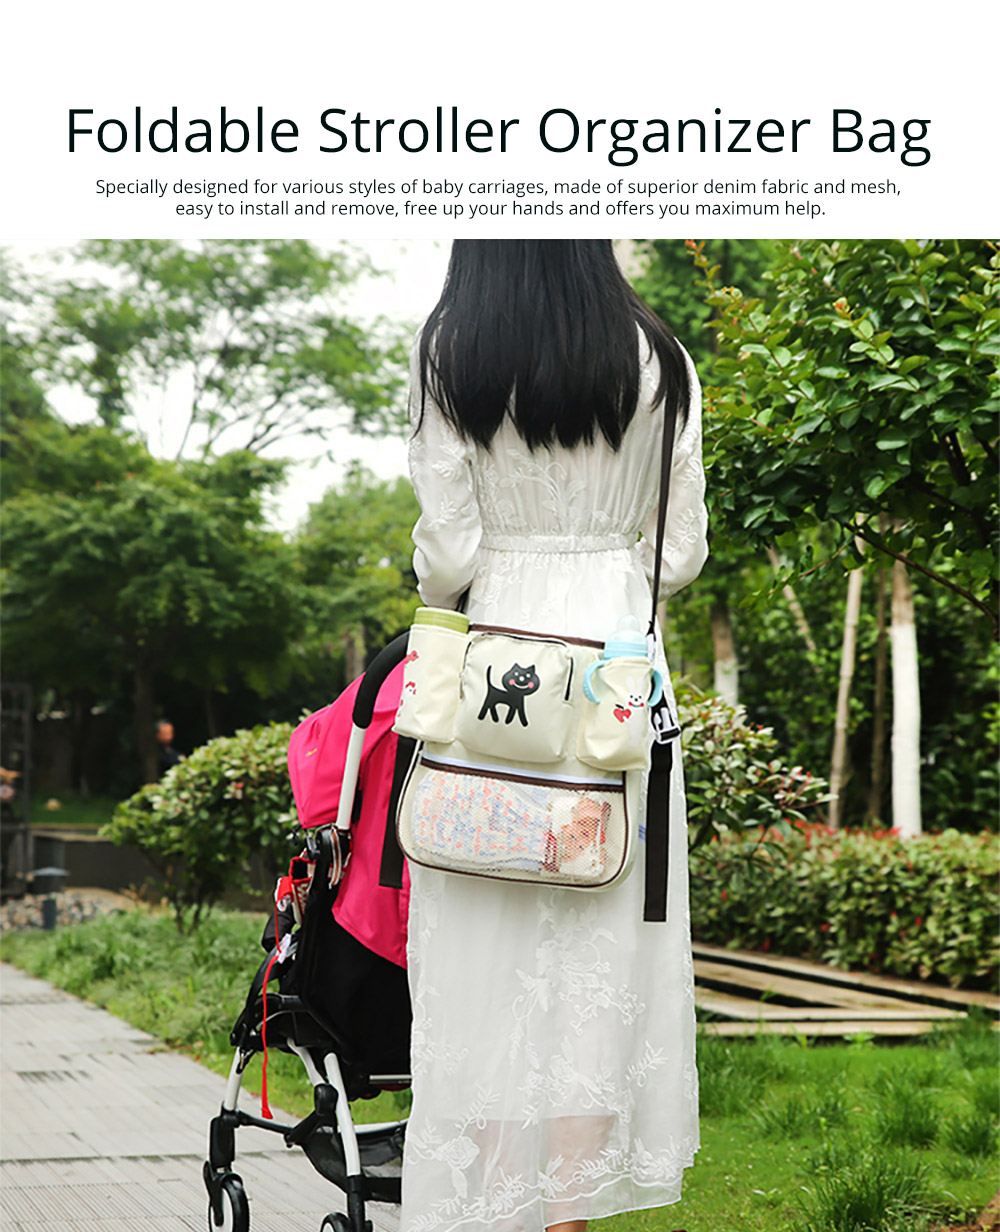 Durable Stroller Organizer Bag for Shipping or Walking